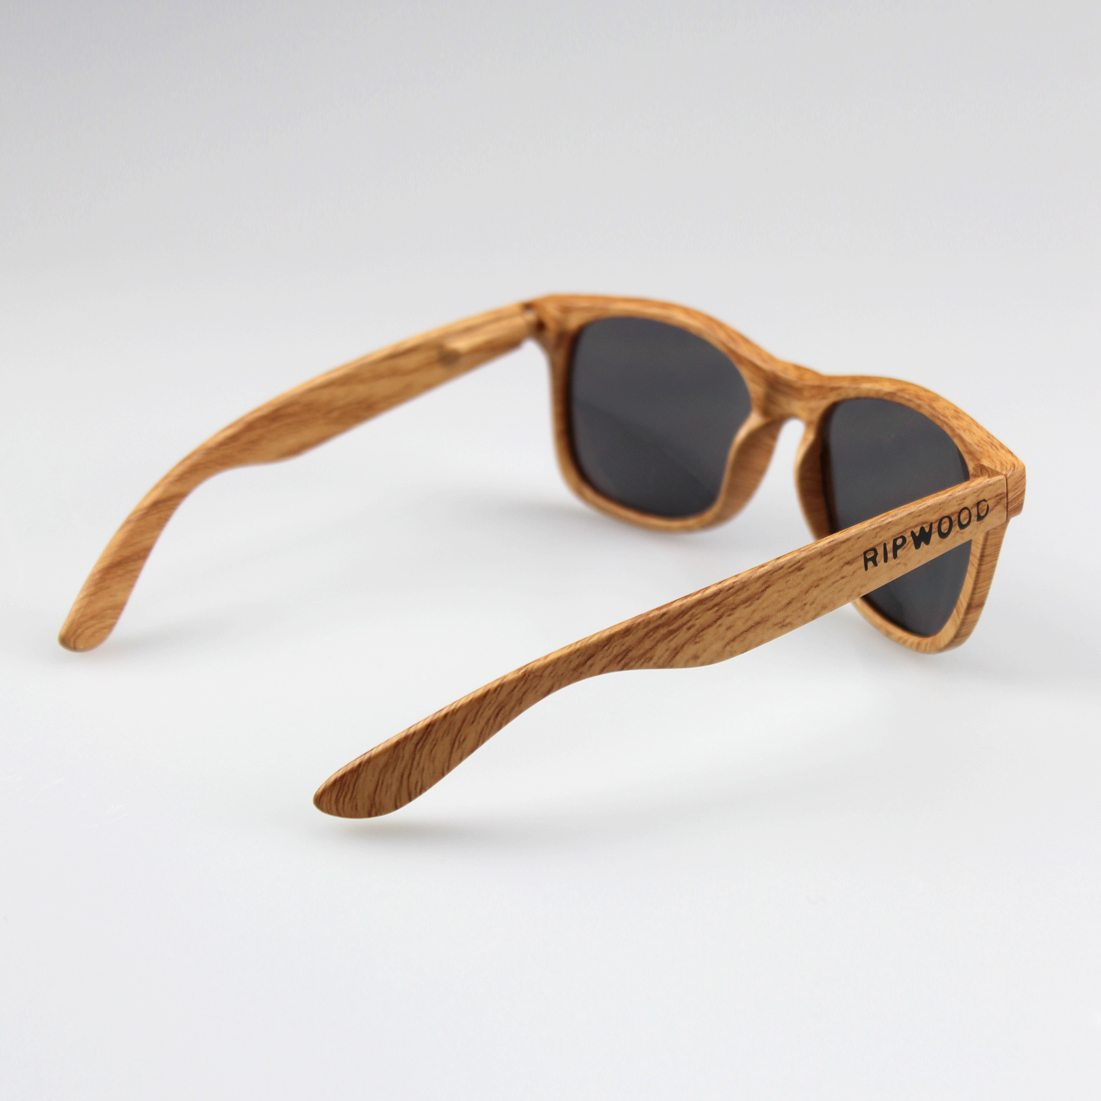 RipWood Sunglasses